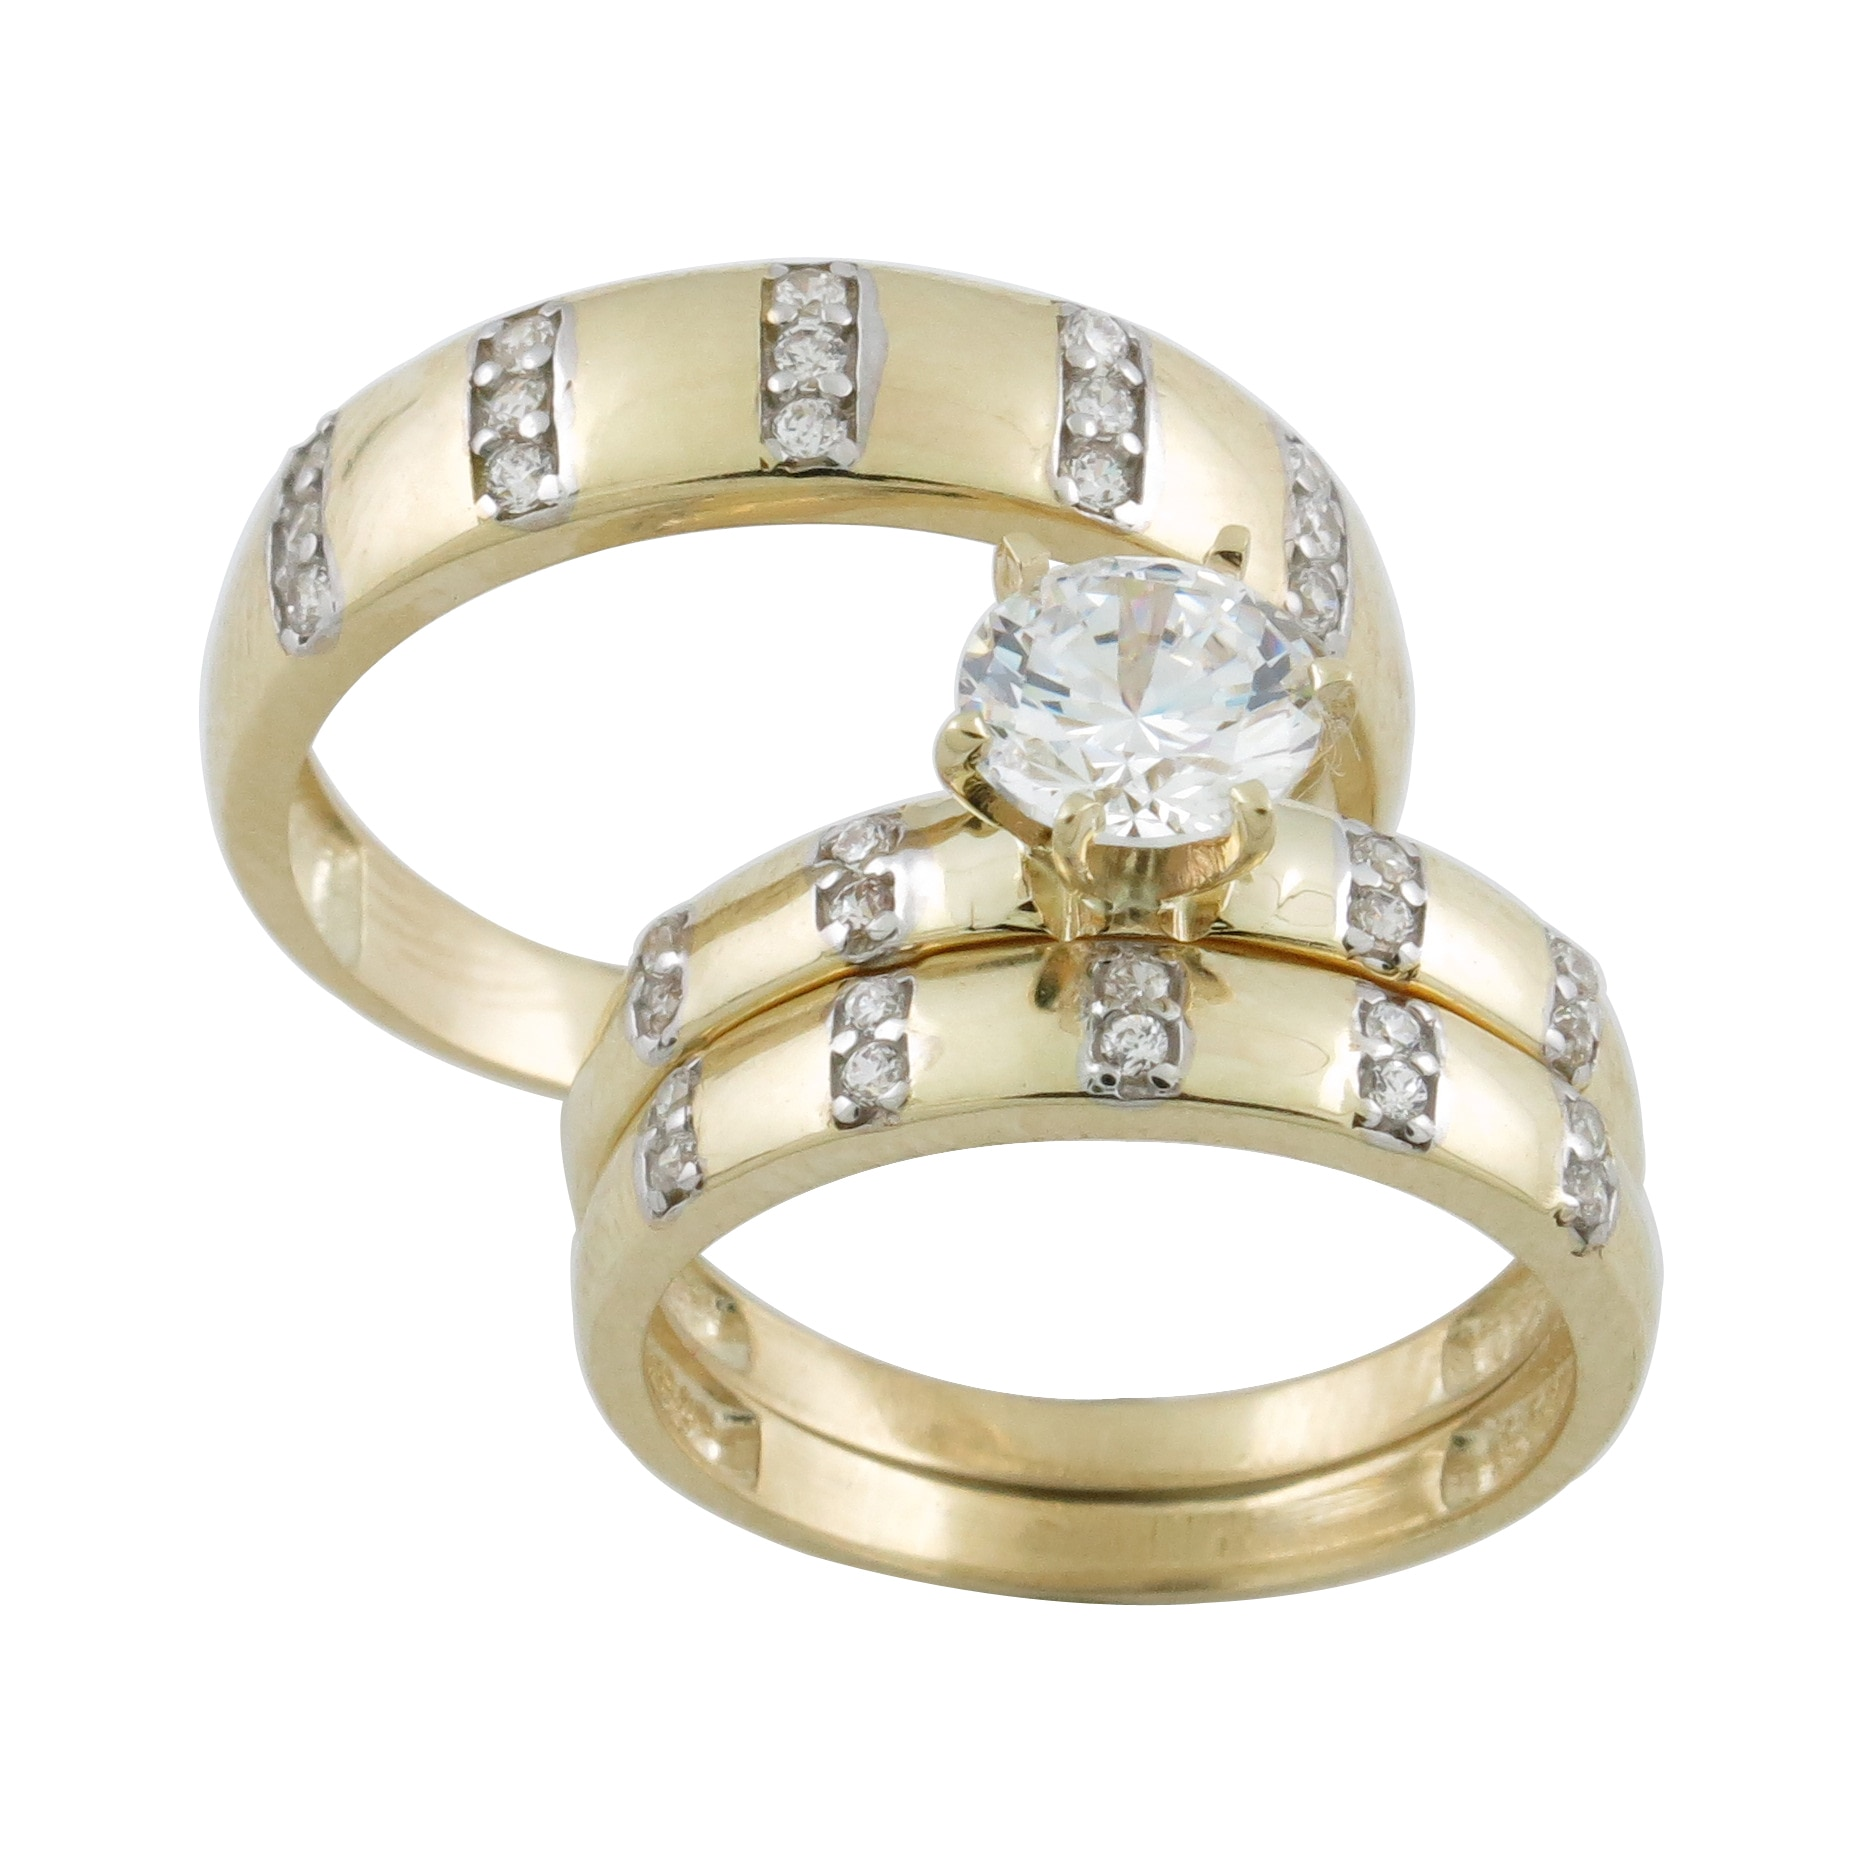 New Gold Jewelry 10k Gold Cubic Zirconia Matching His and Hers Bridal-style Ring Set